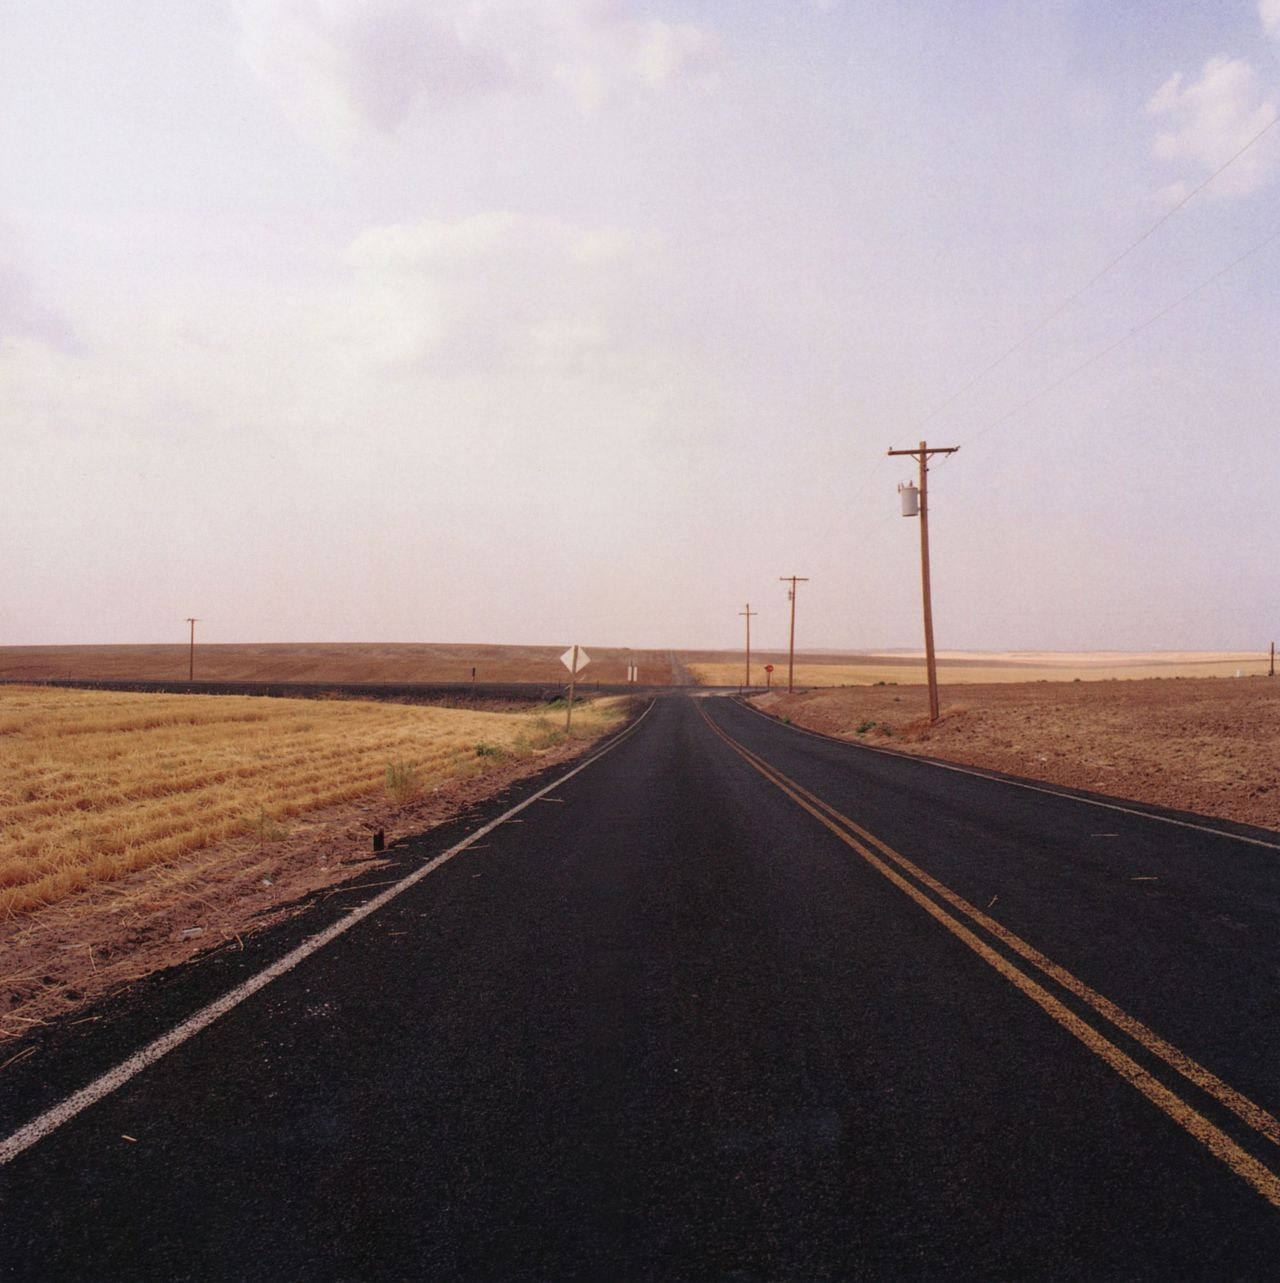 Jeff Brouws, Route 2 near Hartline, Washington, 2003. From Approaching Nowhere: Photographs. Thank you, liquidnight.